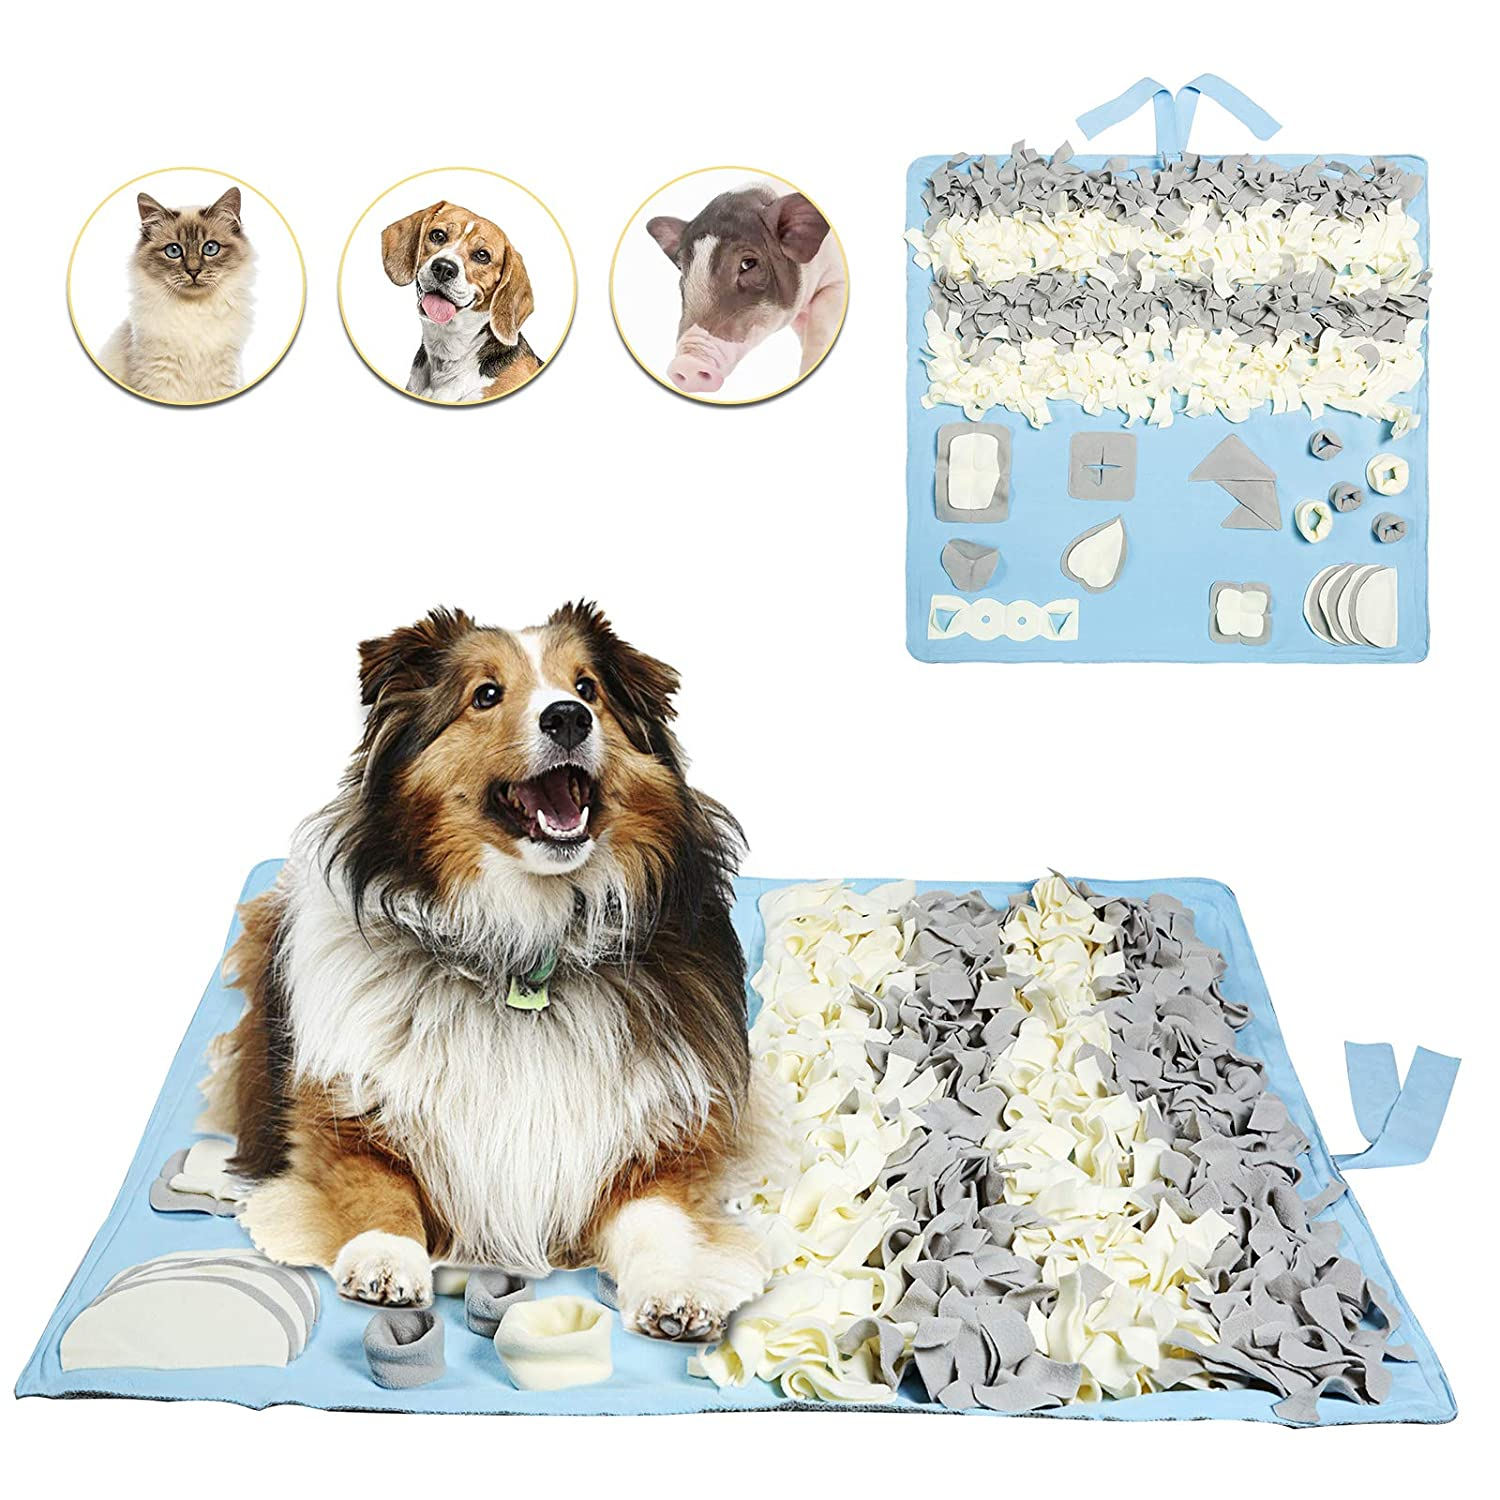 bluee L(39.3\ bluee L(39.3\ Petvins Dog Snuffle Mat Treat Blanket, Pet Puzzle Activity Mat for Stress Release, Nose Work Mat for Slow Feeding and Foraging Training bluee